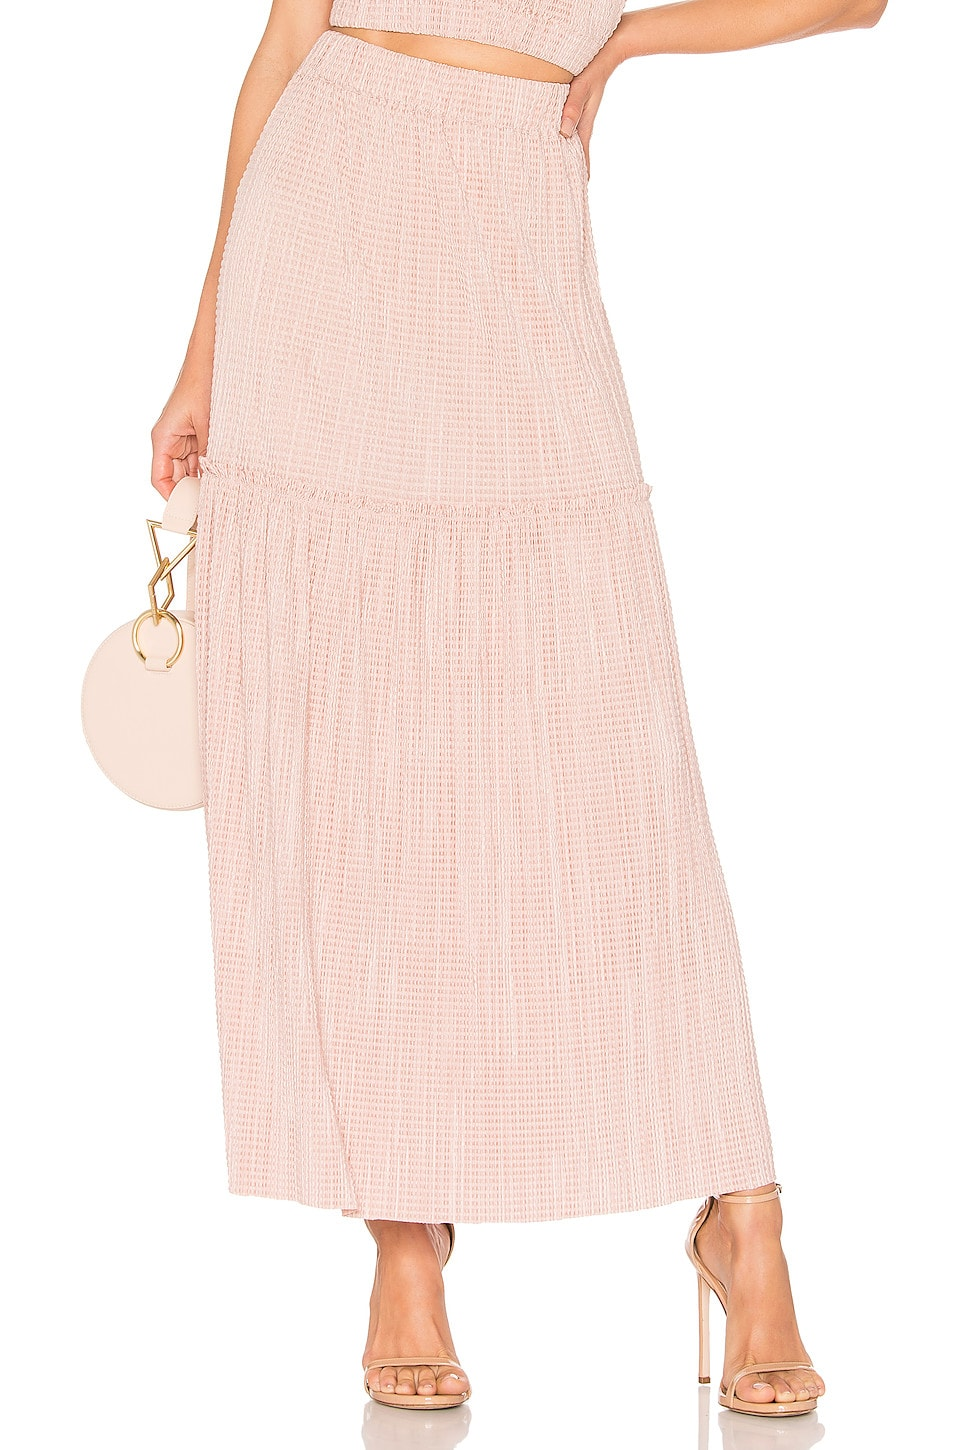 Sabina Musayev Amber Skirt in Blush